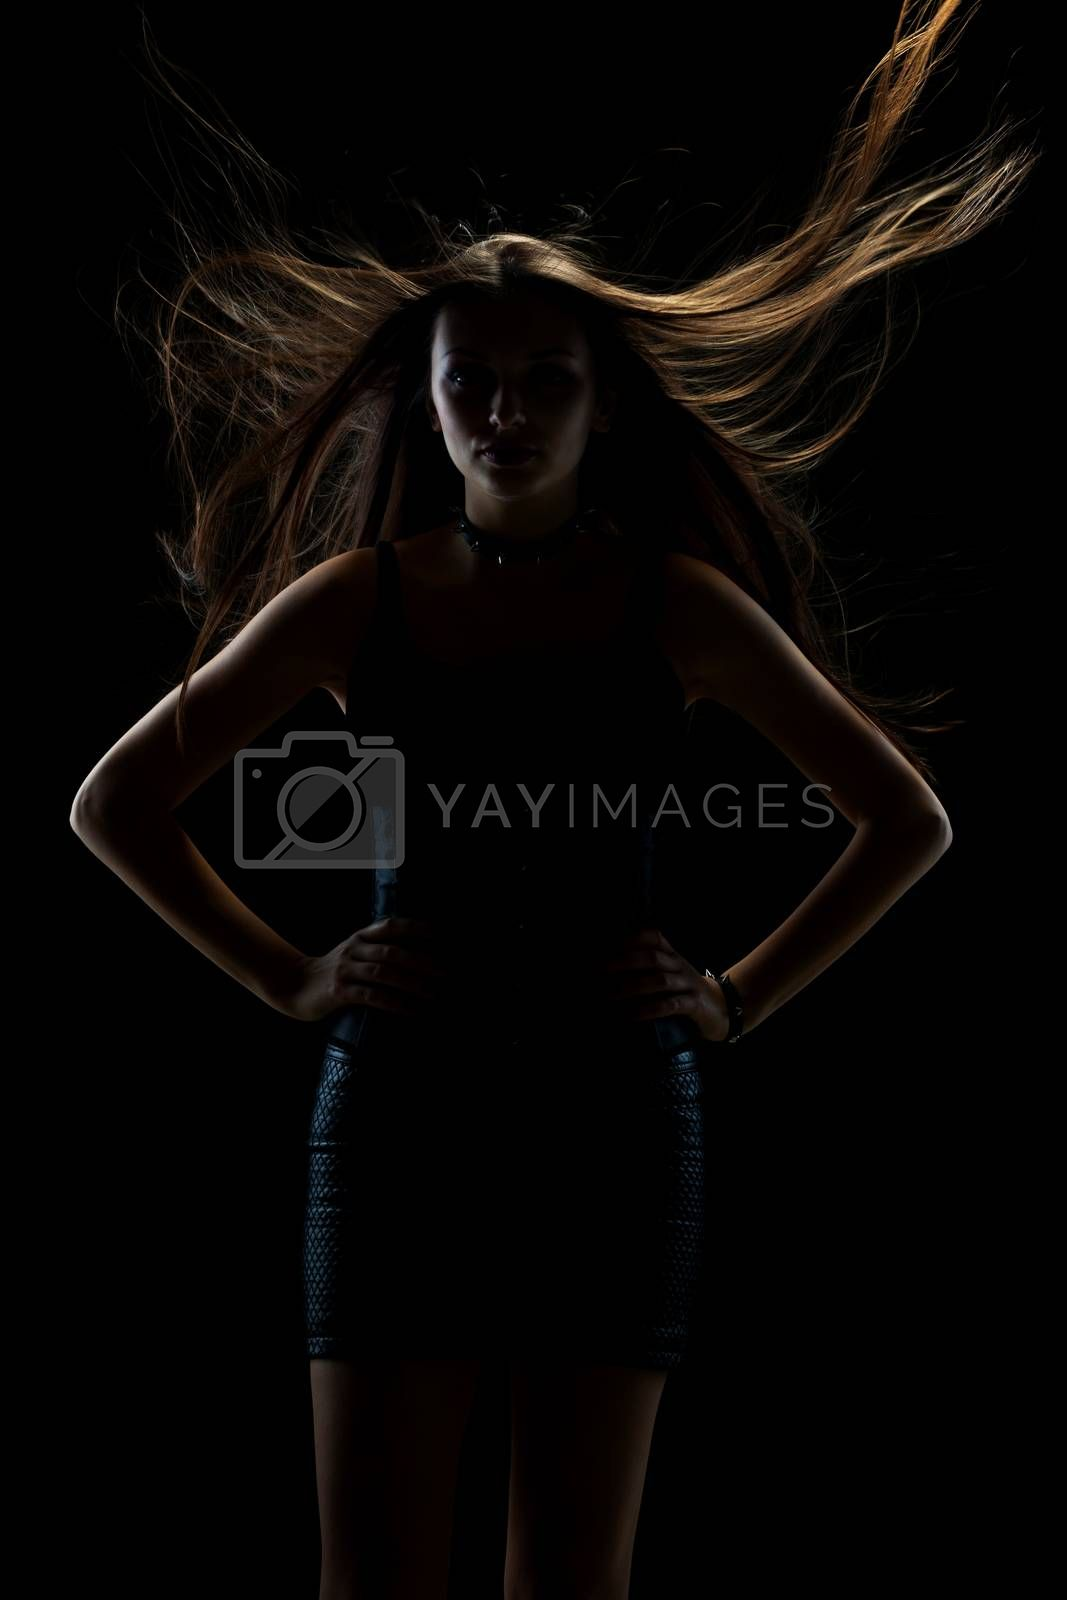 portrait of young sexy girl with long hair in the air on dark background in studio, goth style